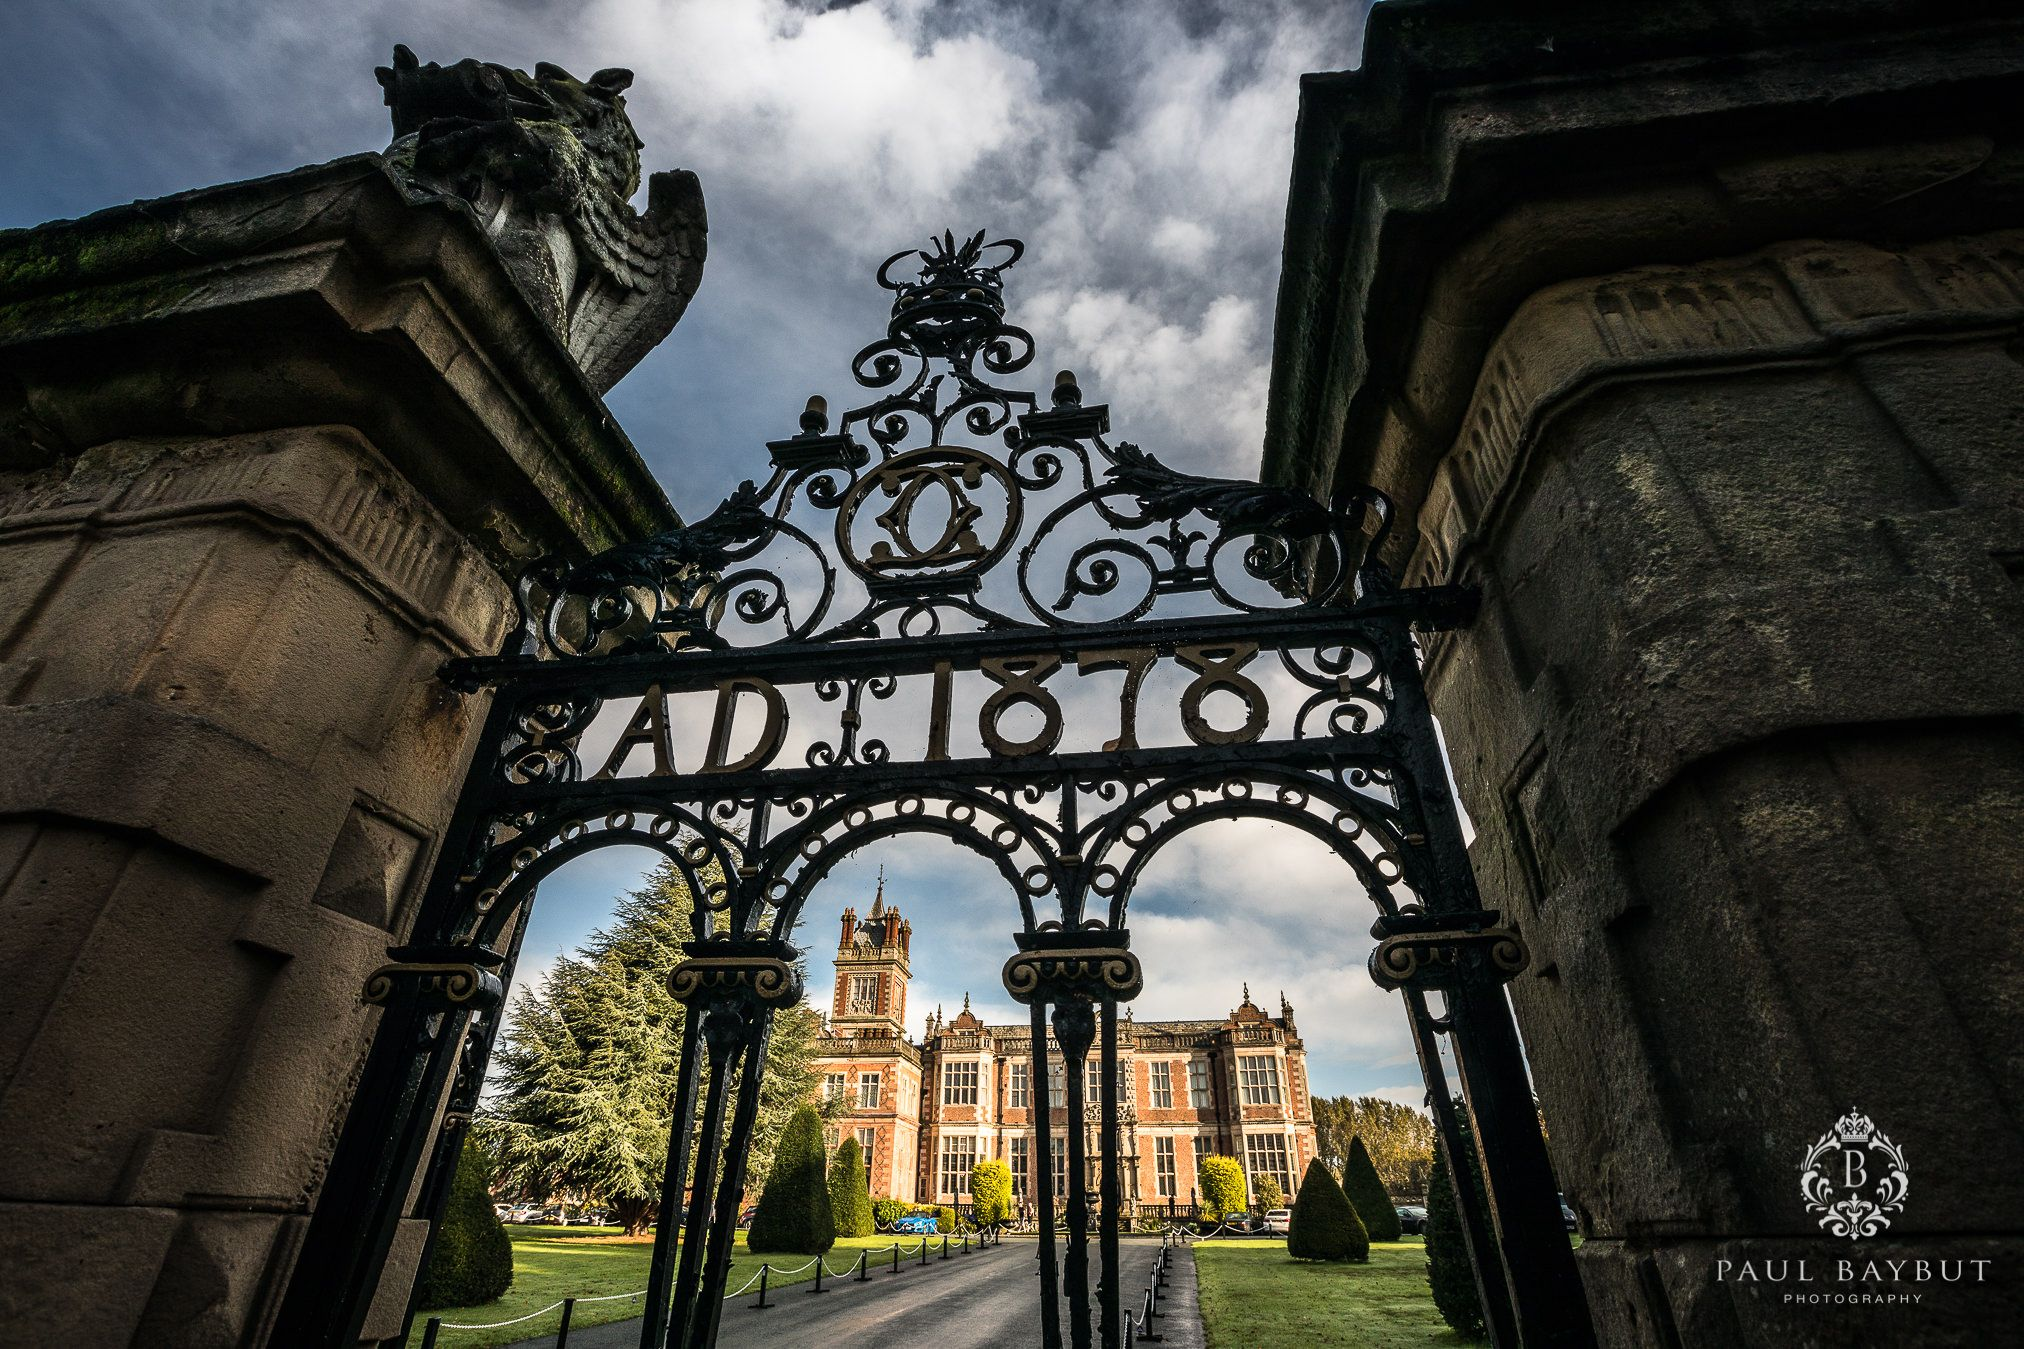 Ornate iron gates leading to a view of Crewe Hall wedding venue